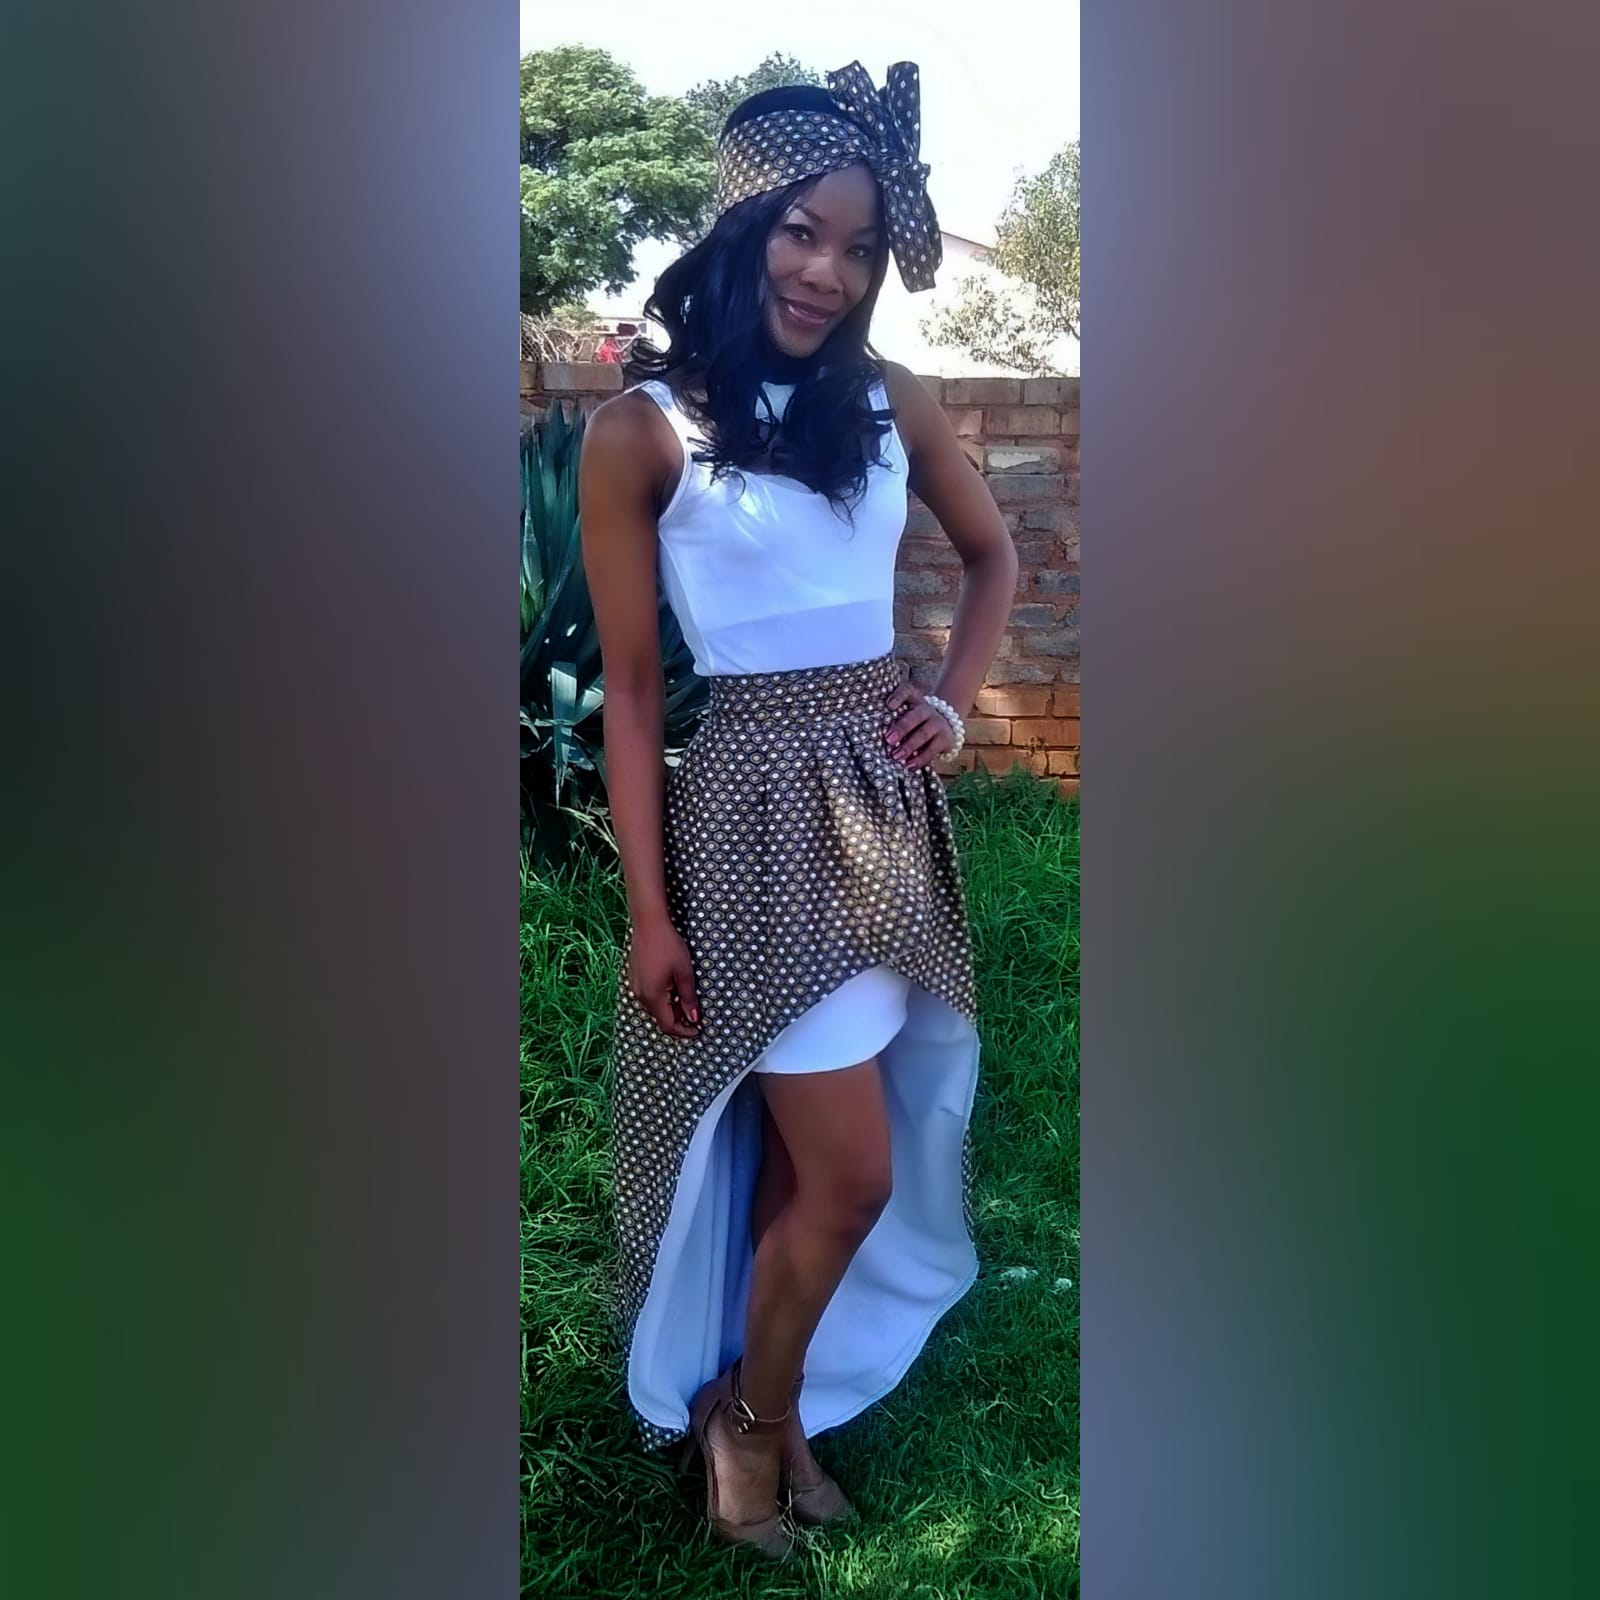 High waisted hi-low traditional skirt with xhosa print 1 high waisted 2 in 1 high low traditional skirt with xhosa print. Inside of the high low lined with white. With an attached mini white skirt. Matching doek.